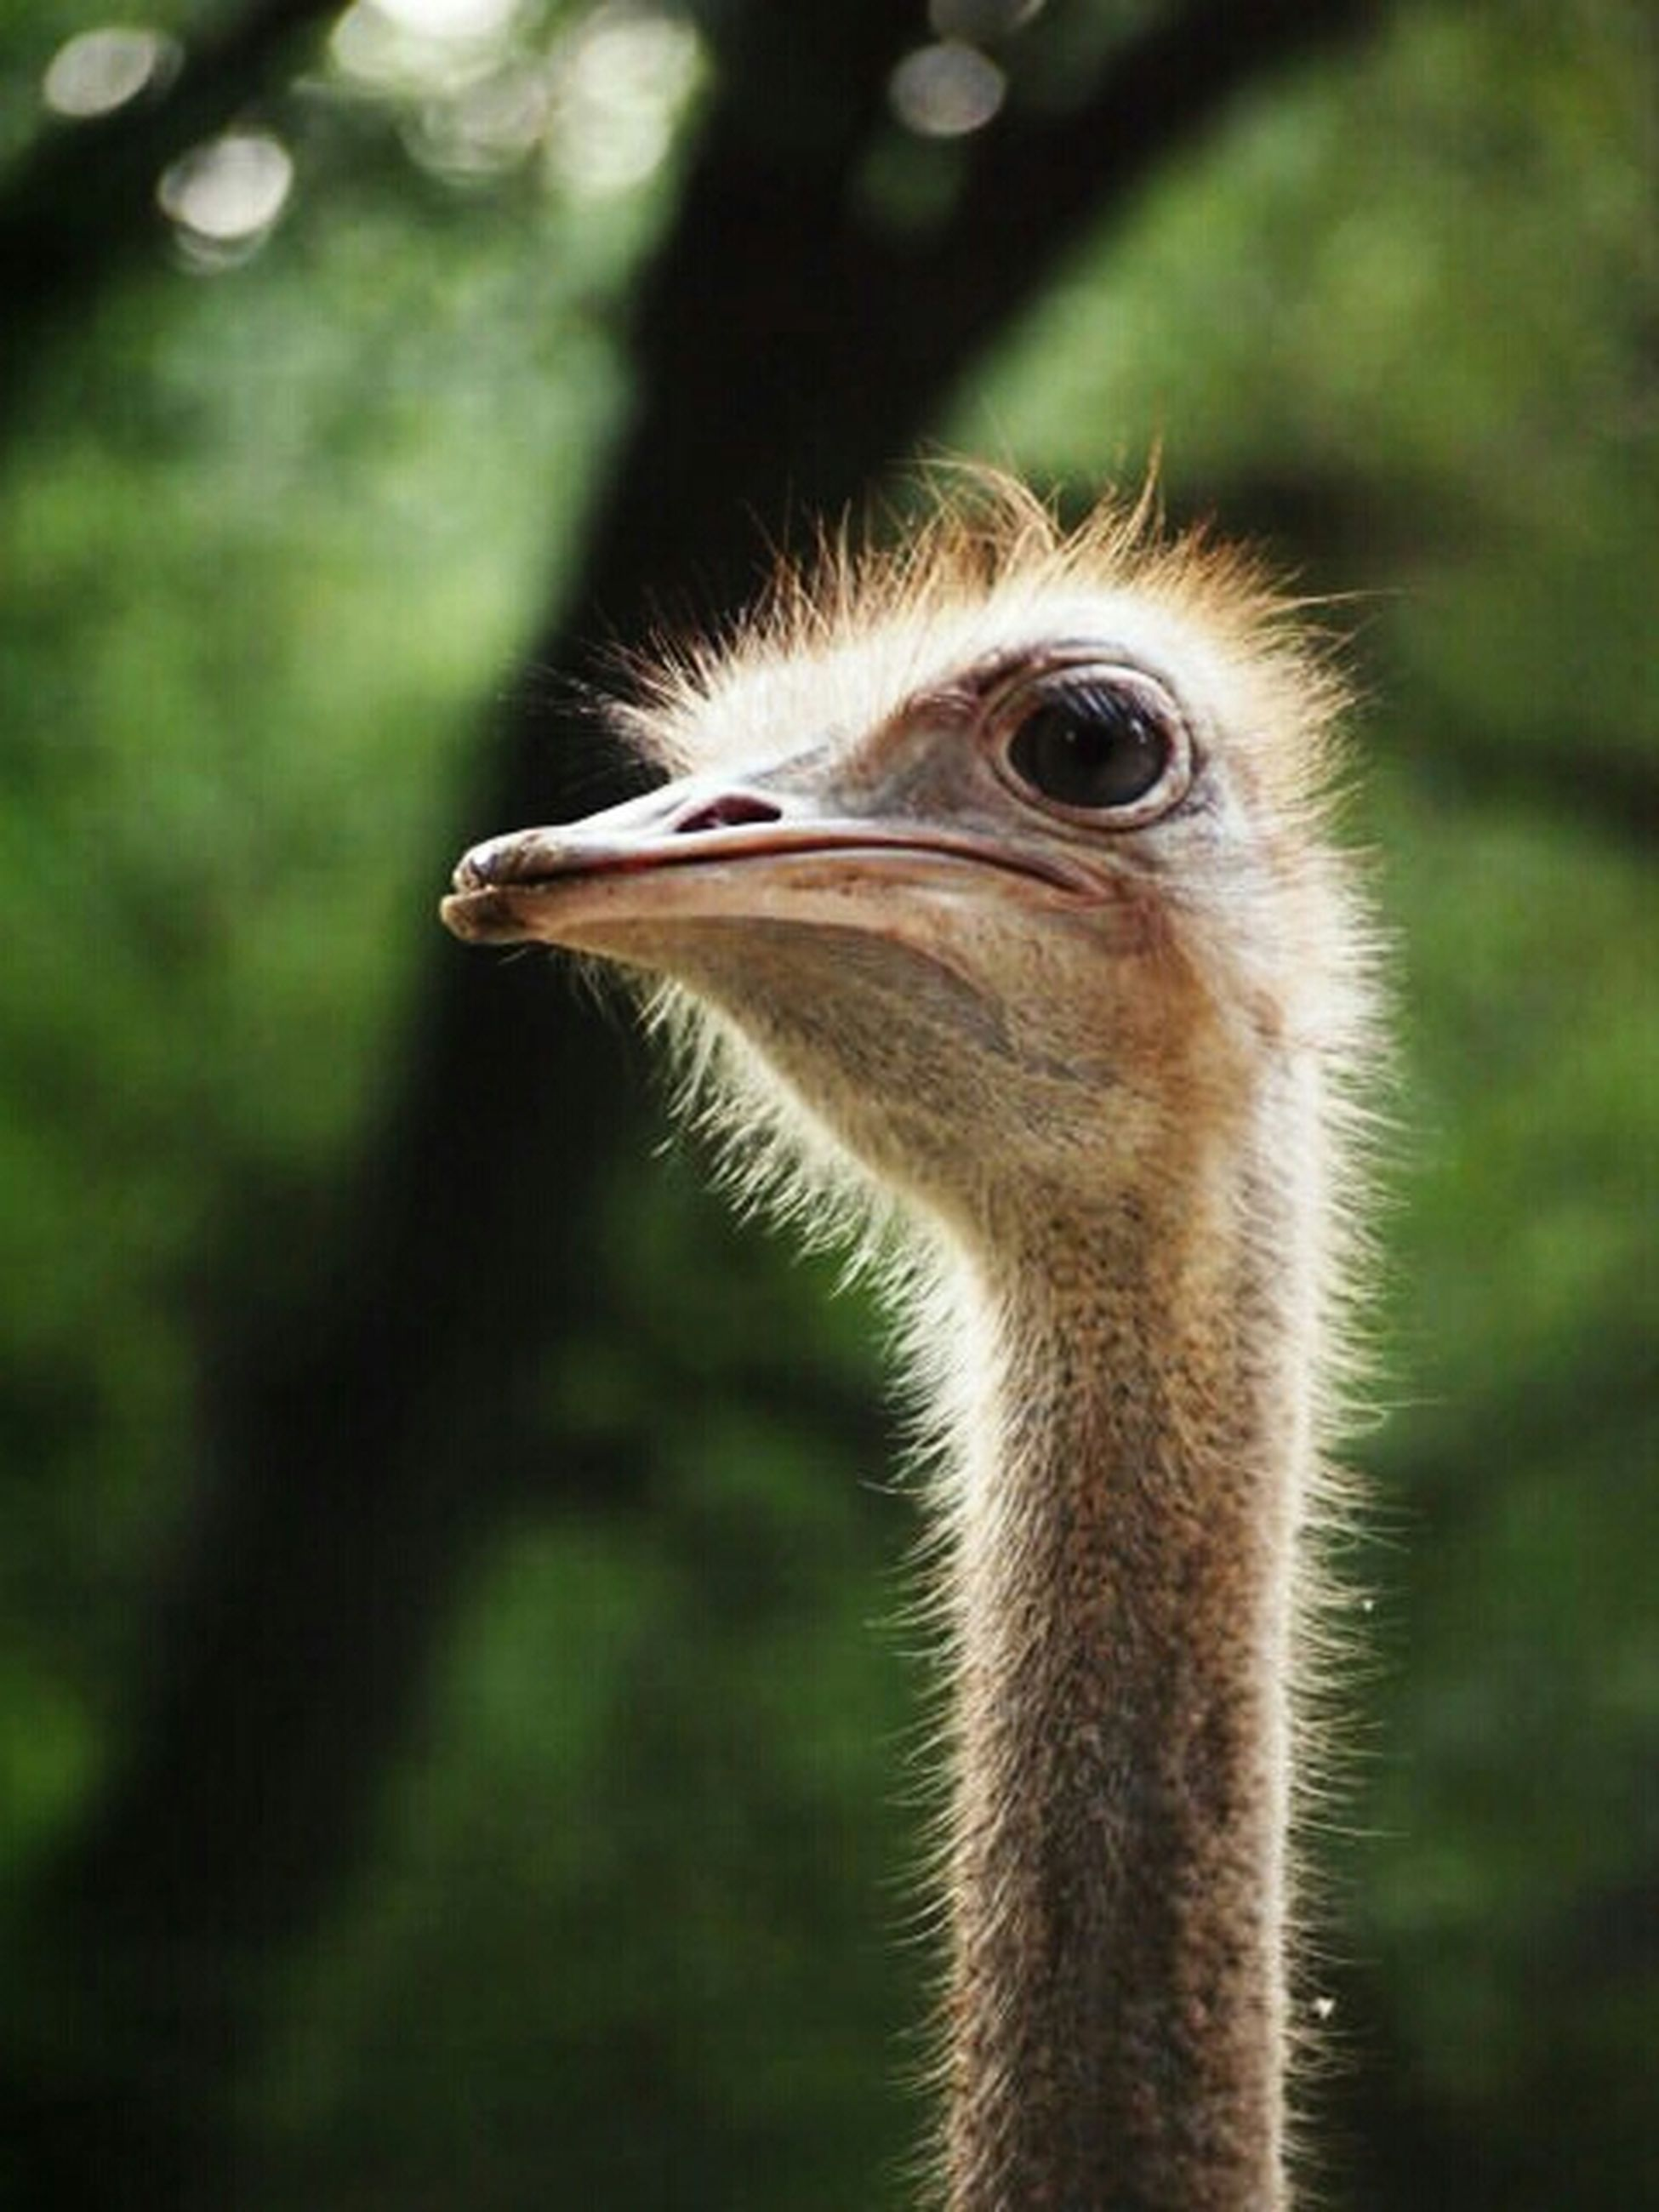 animal themes, one animal, animals in the wild, wildlife, focus on foreground, animal head, close-up, beak, animal body part, bird, side view, looking away, nature, outdoors, animal eye, zoology, day, no people, vertebrate, part of